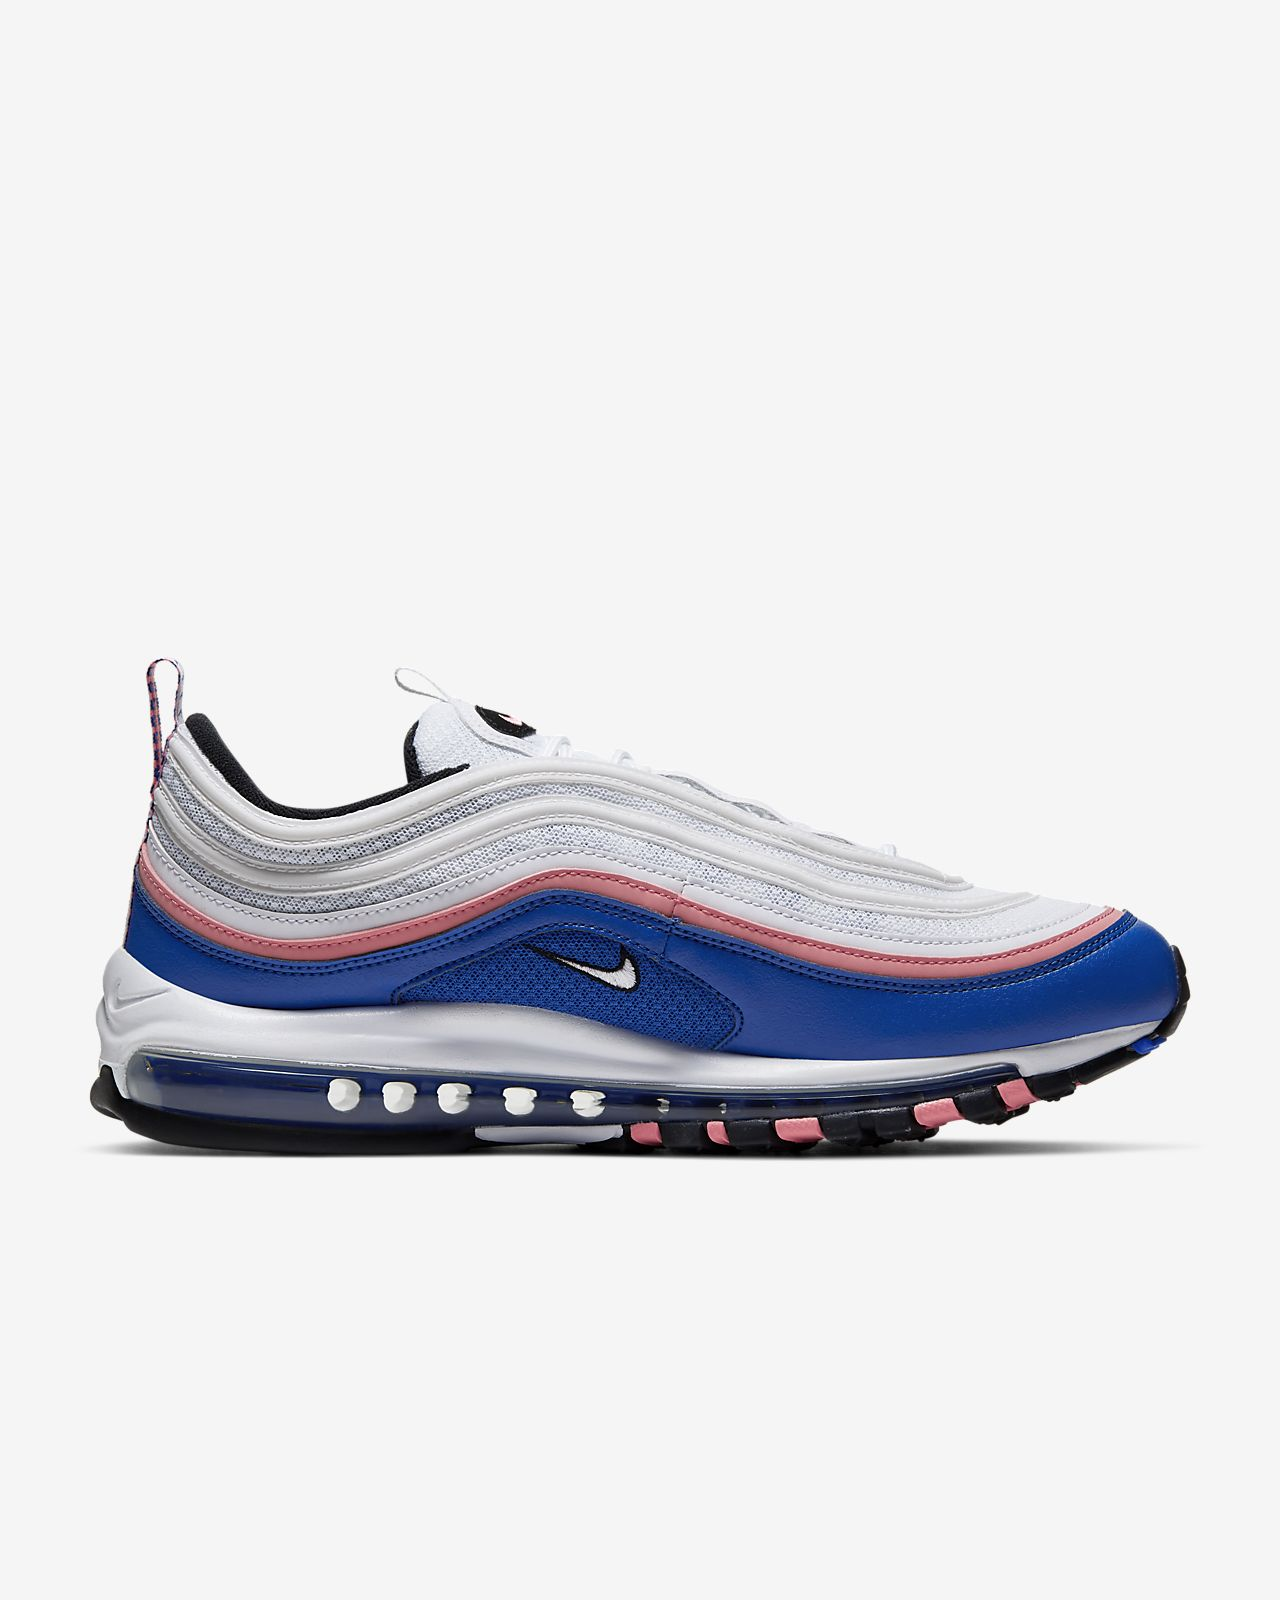 106 Best Nike Air Max 97 images in 2019 | Air max 97, Nike